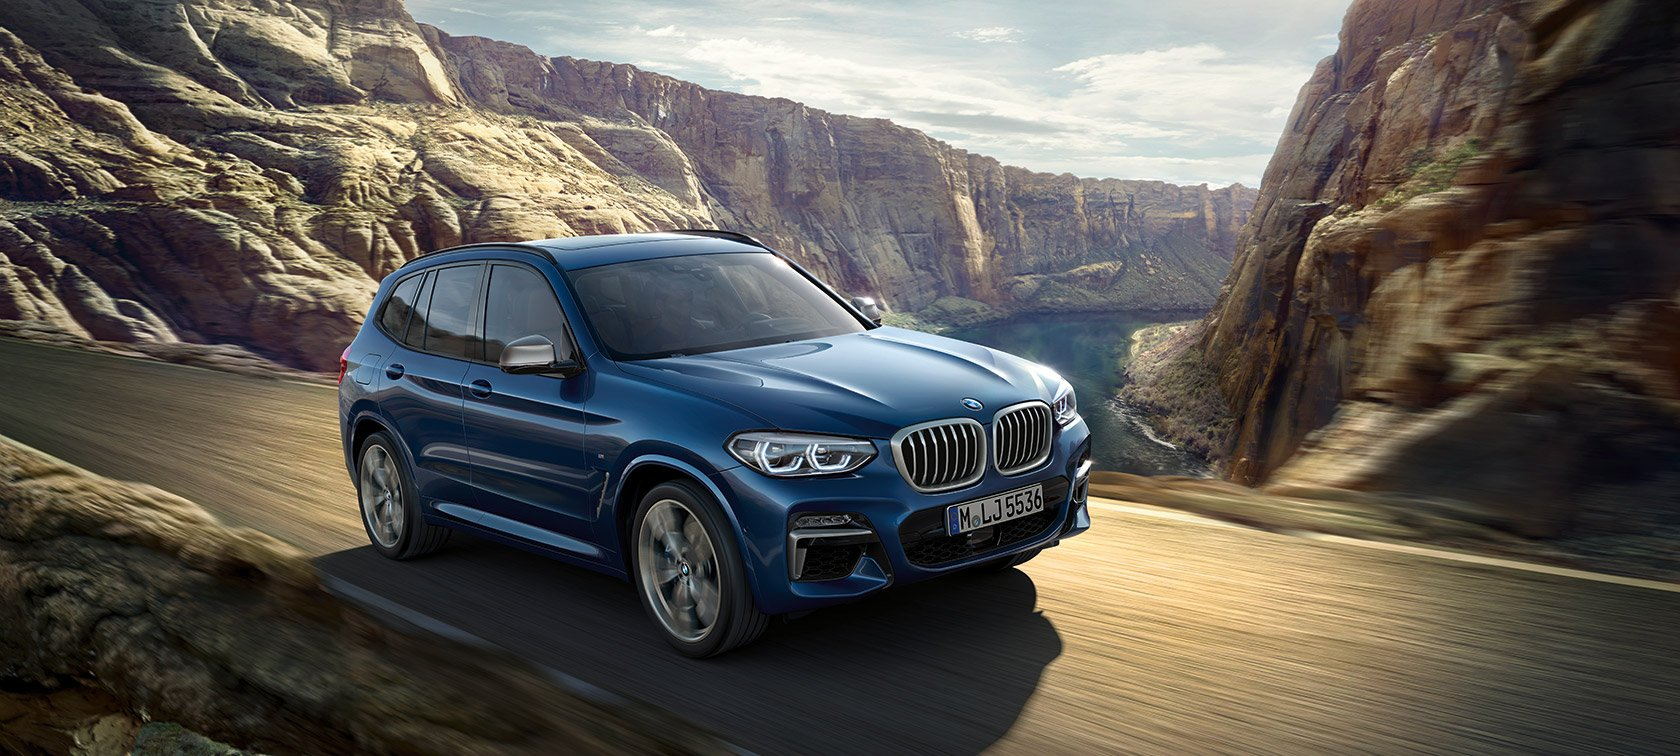 first official original and car reviews news review bmw driver photos info drive s photo